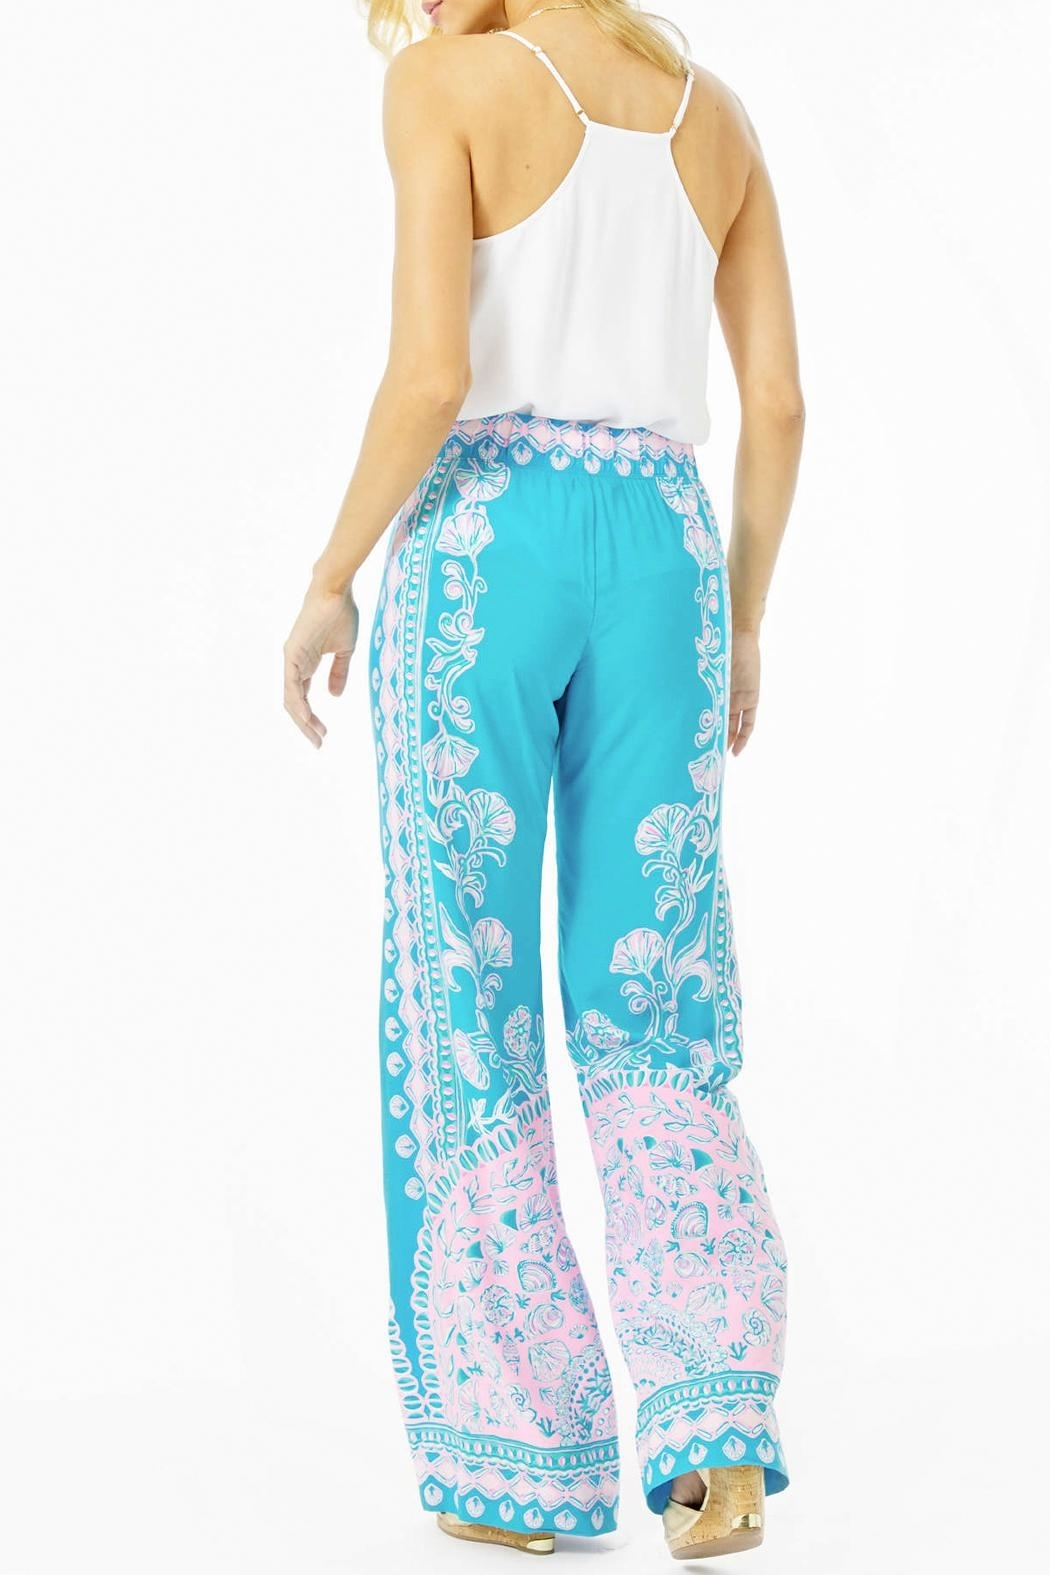 Lilly Pulitzer Bal-Harbour Mid-Rise Palazzo-Pant - Main Image